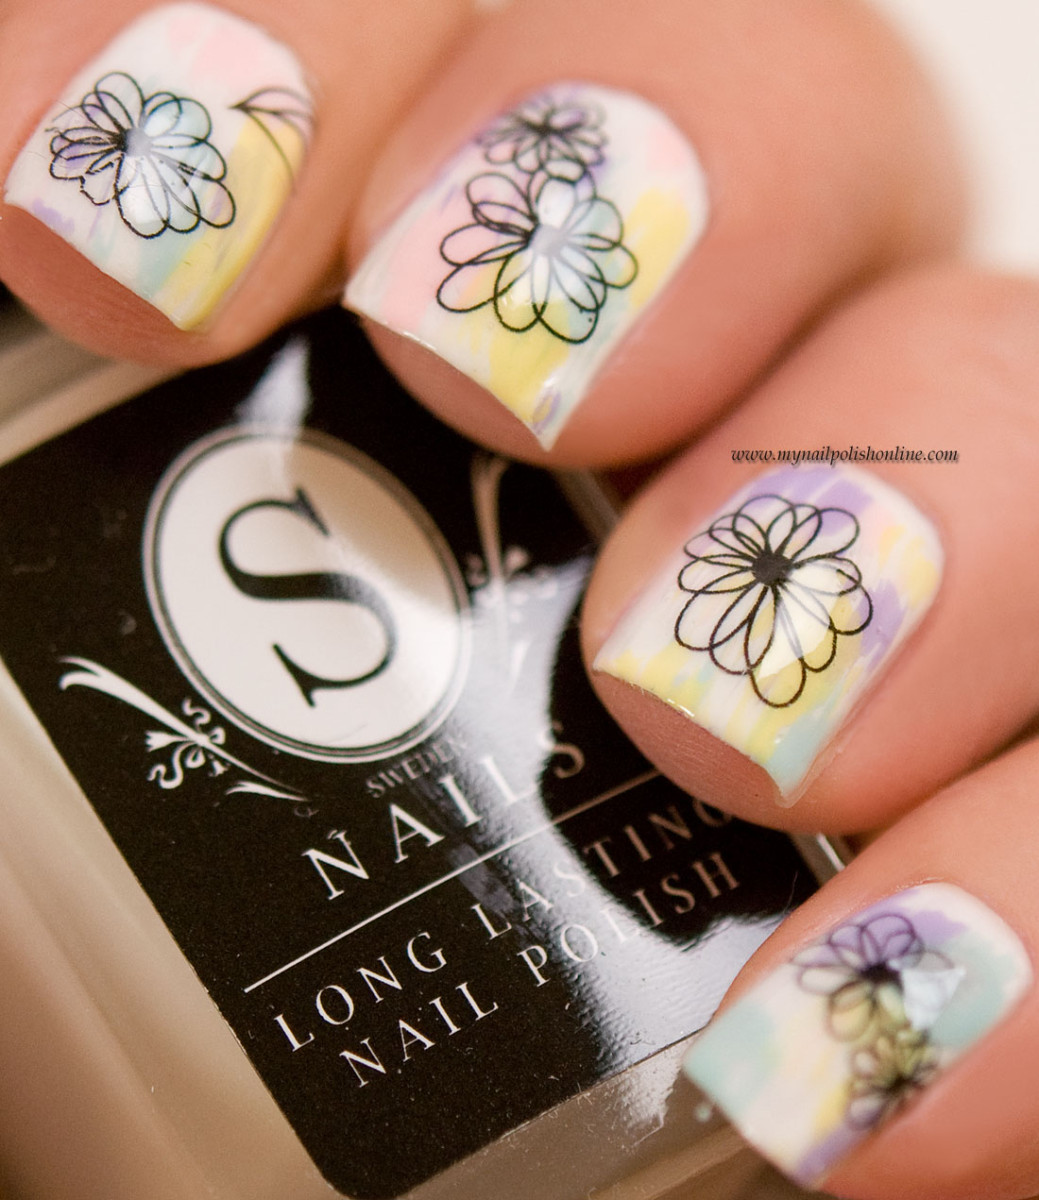 Nail art with water decals from Saijtam.se